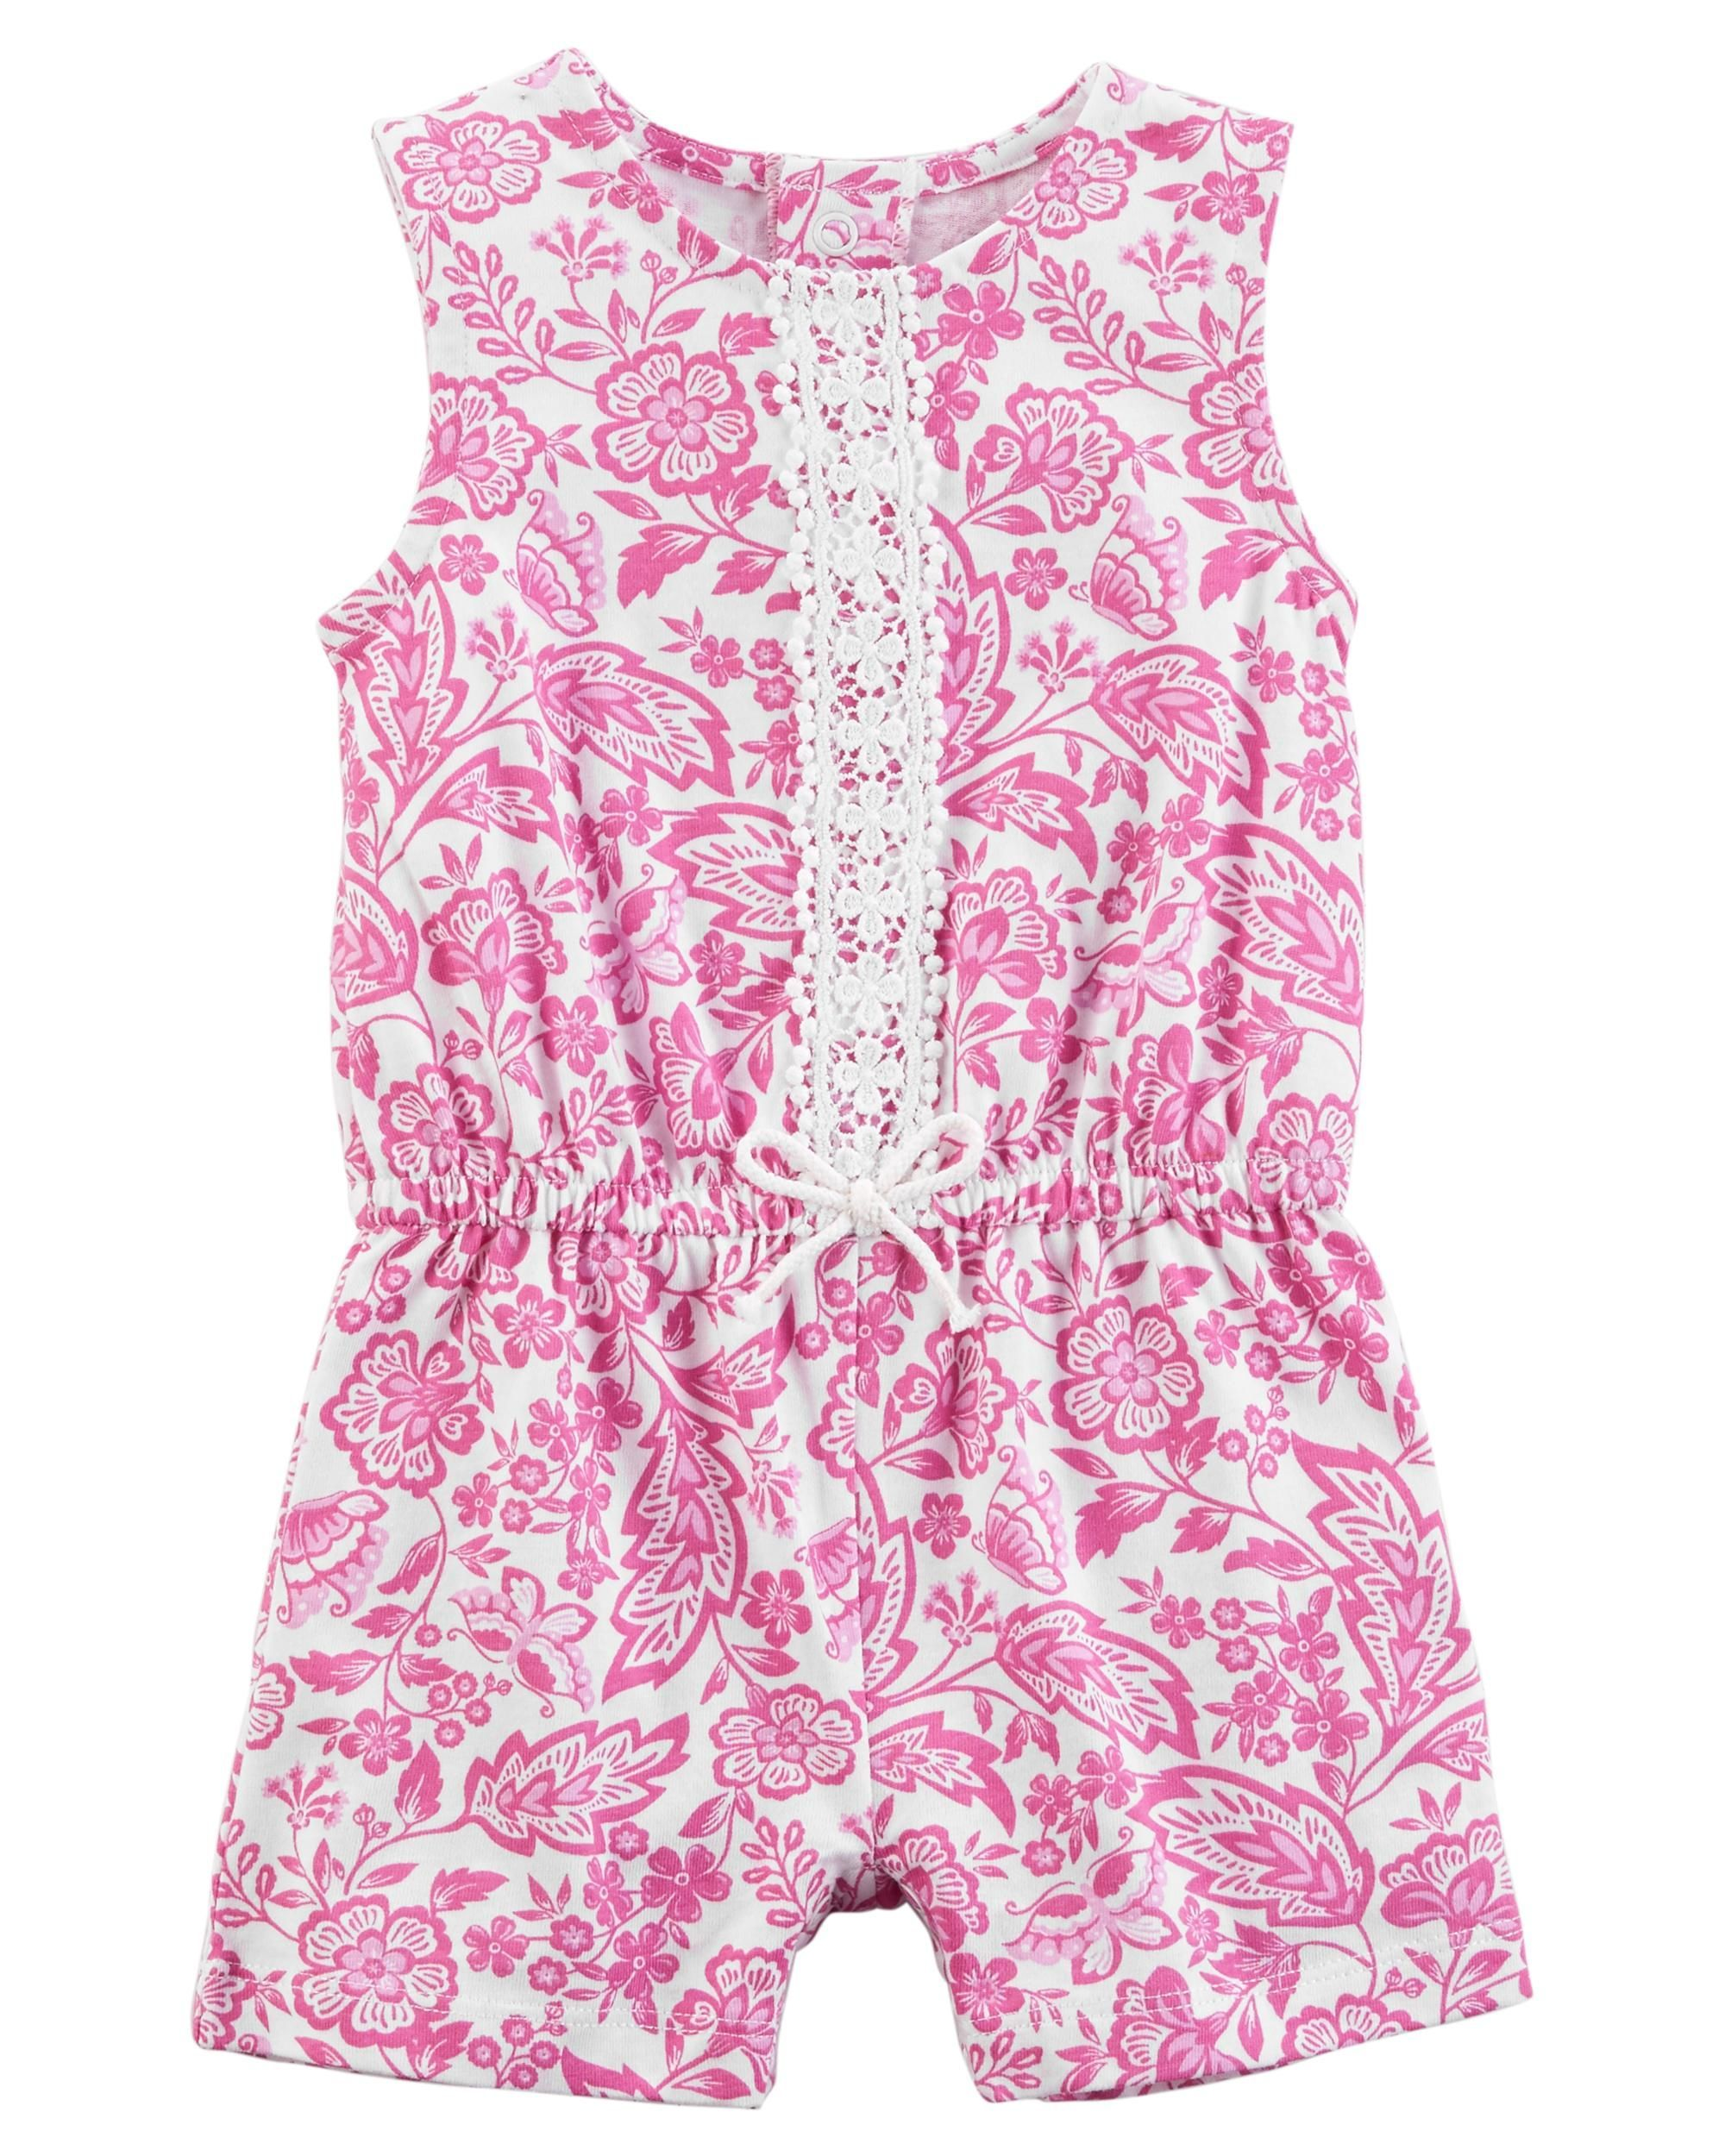 95962d0c974c Baby Girl Lace Romper from Carters.com. Shop clothing   accessories from a  trusted